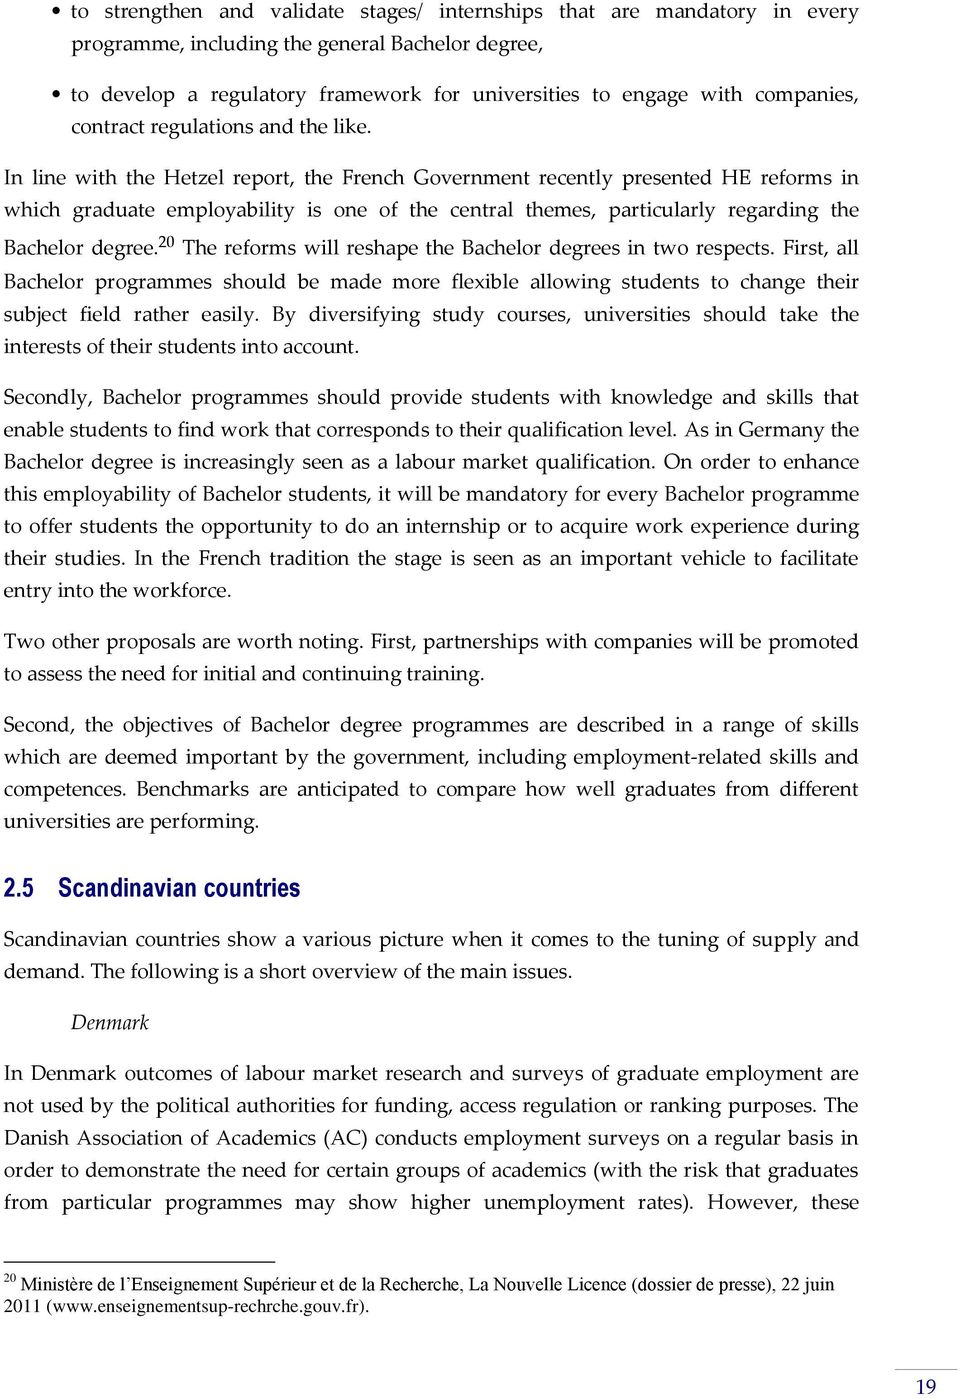 In line with the Hetzel report, the French Government recently presented HE reforms in which graduate employability is one of the central themes, particularly regarding the Bachelor degree.